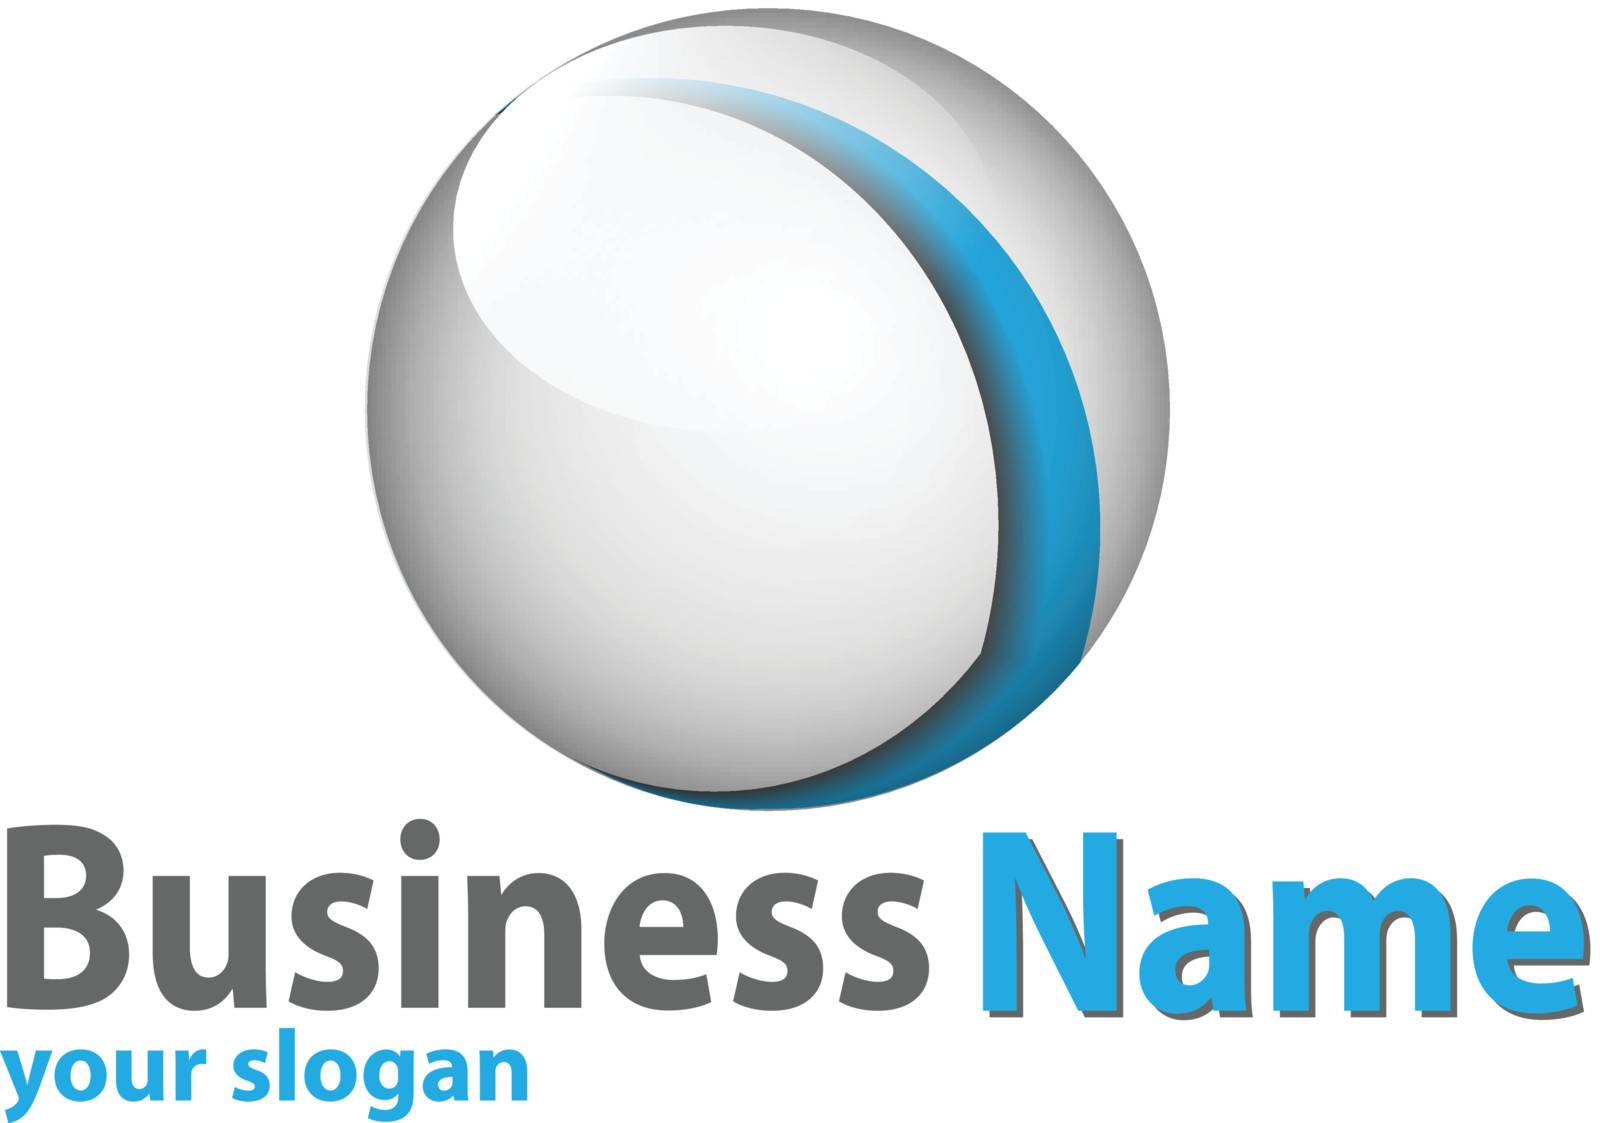 Logo 3d glossy sphere blue and white perfect for your business.